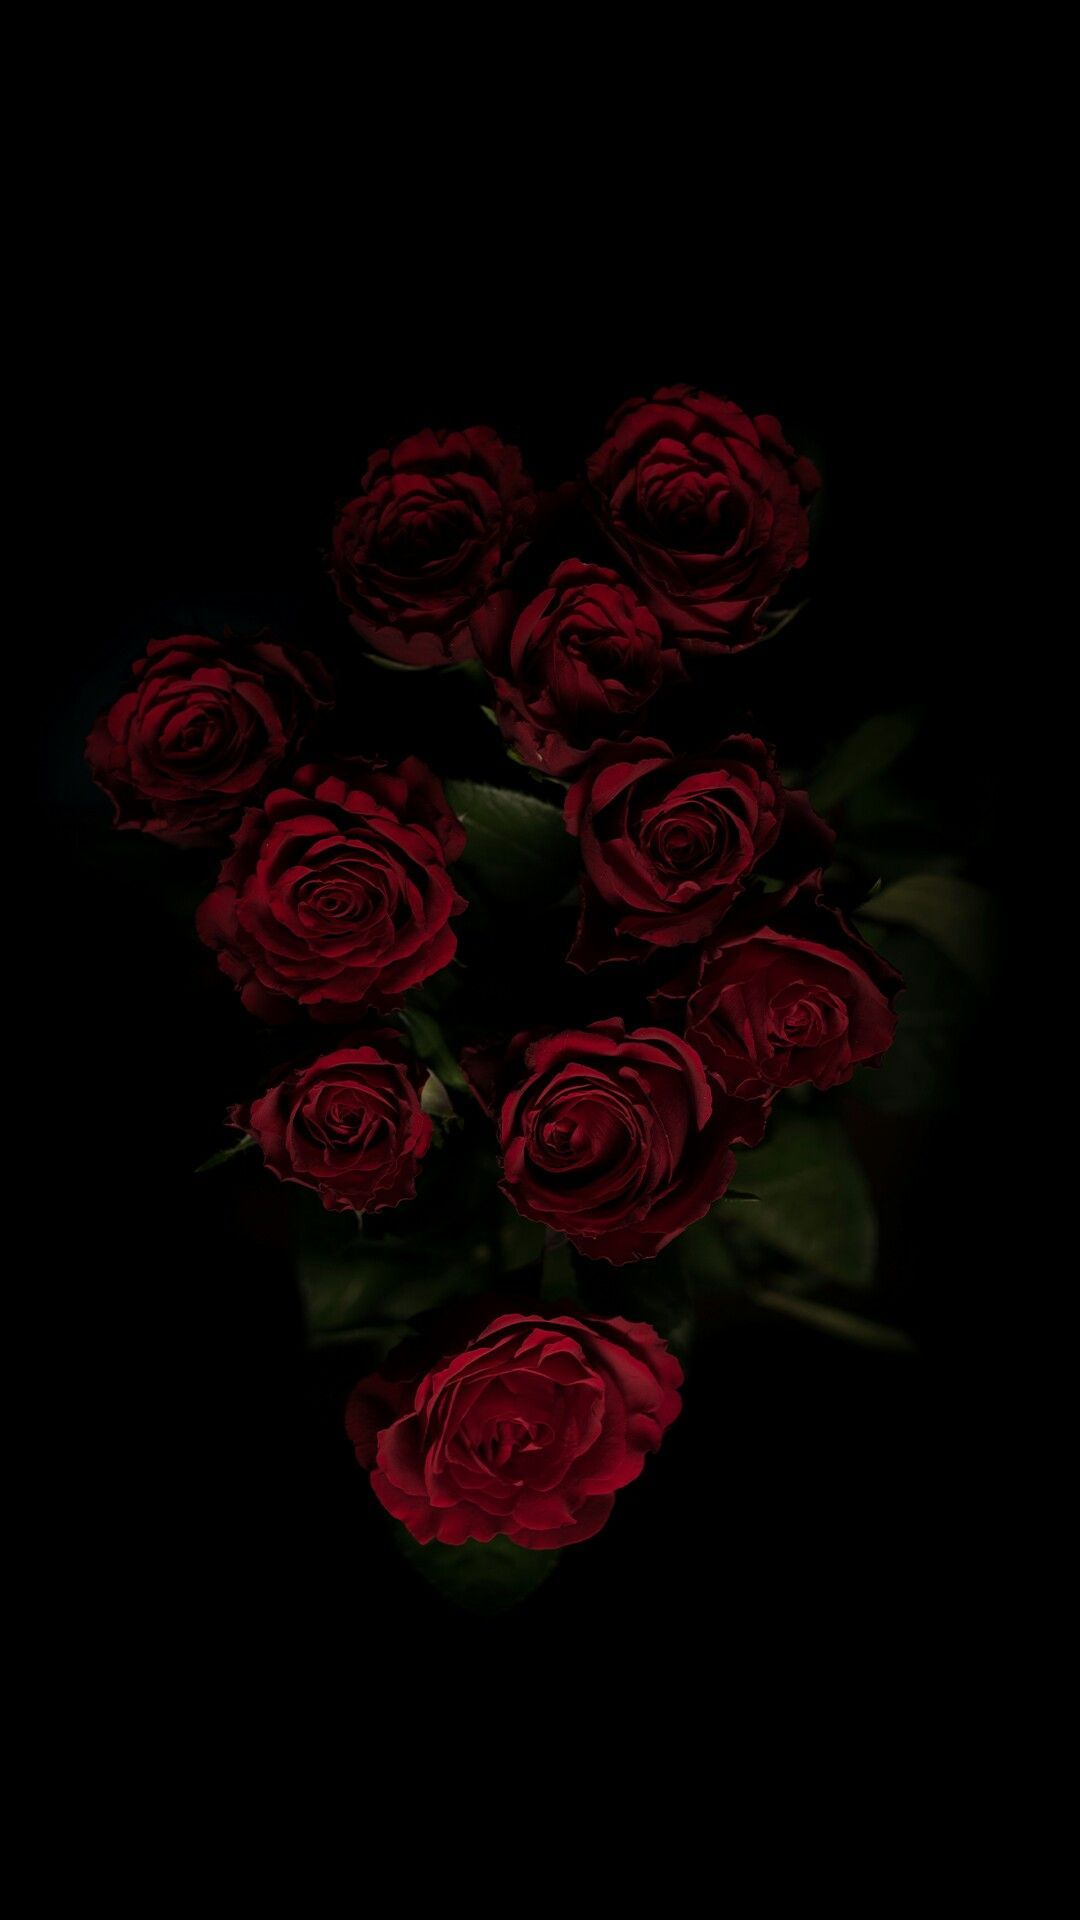 Dark Roses Aesthetic Wallpapers On Wallpaperdog